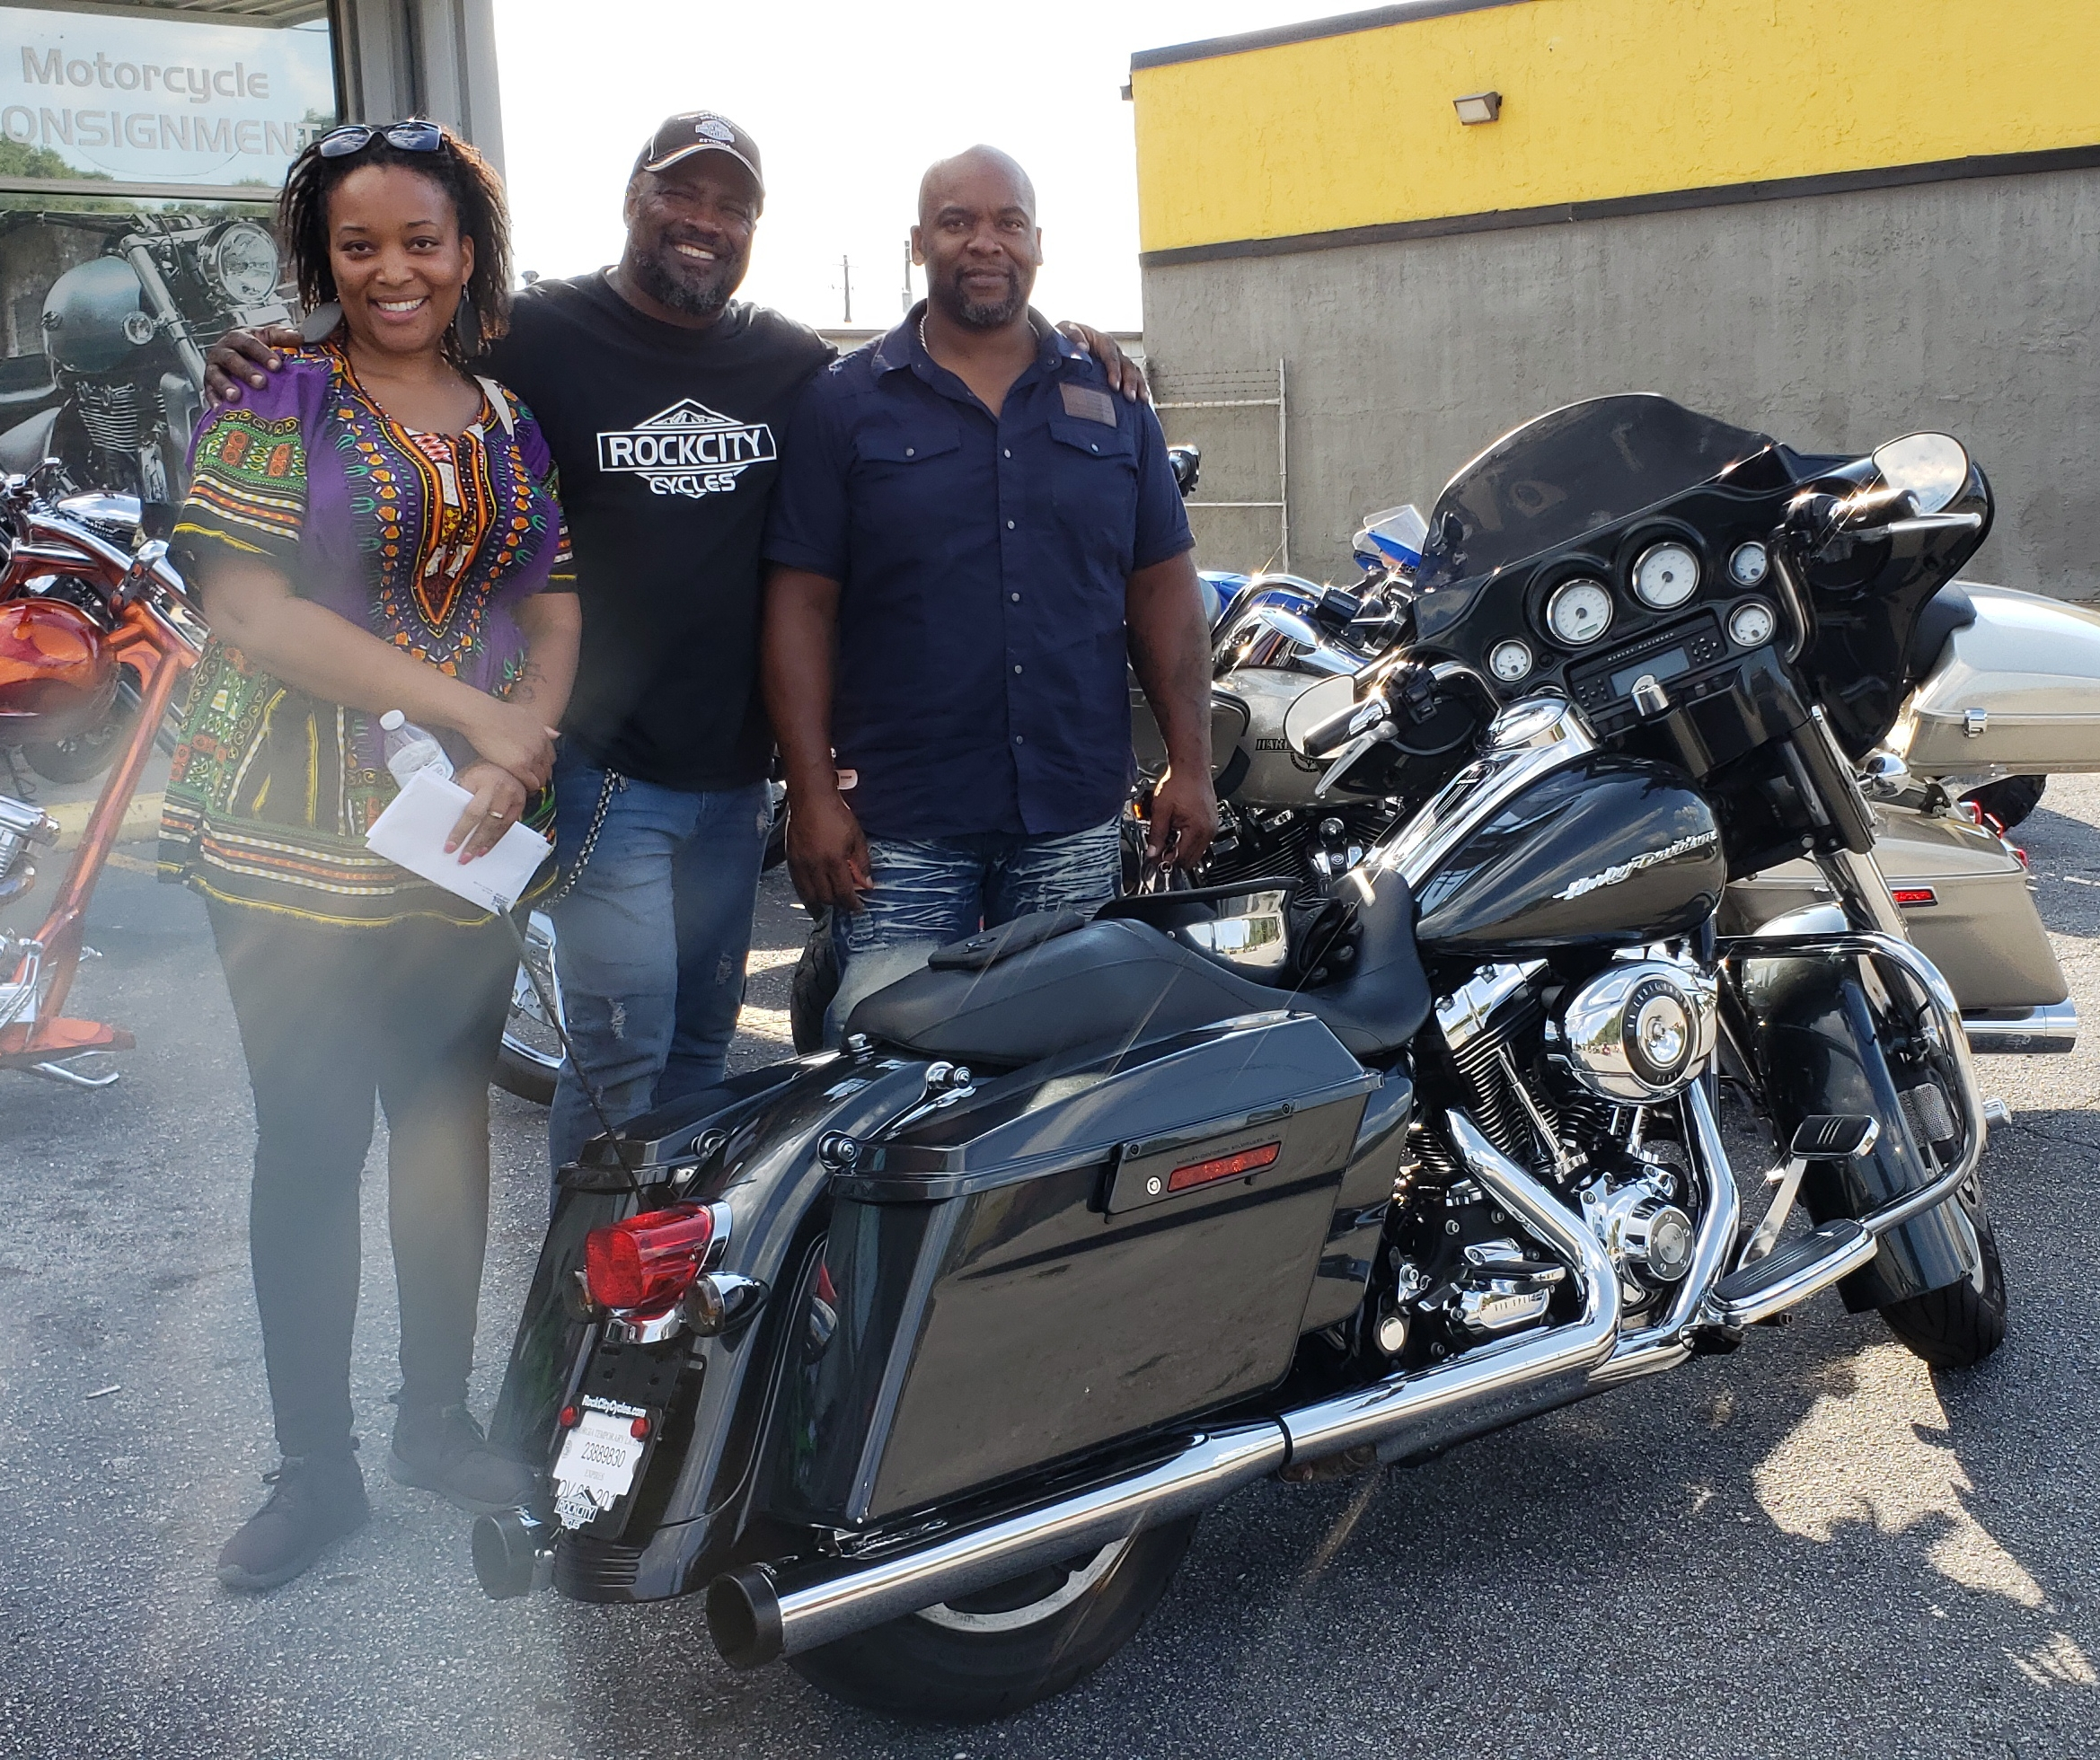 The Berry's with their 2009 Harley-Davidson FLHX Street Glide